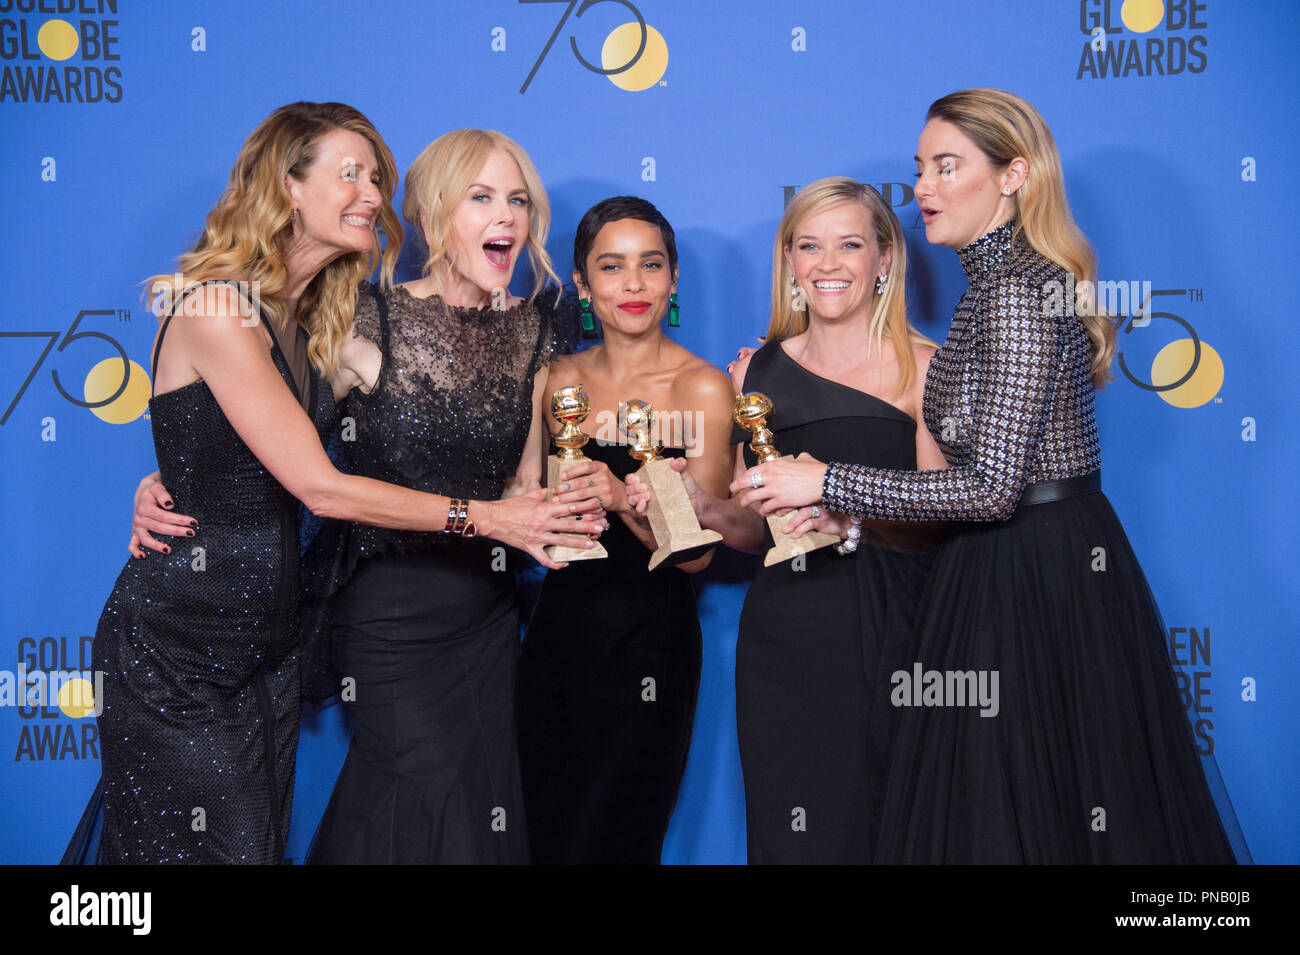 """For Best Television Limited Series or Motion Picture Made for Television, the Golden Globe is awarded to """"Big Little Lies"""" (HBO). Laura Dern, Nicole Kidman, Zoe Kravitz, Reese Witherspoon, and Shailene Woodley pose with the award backstage in the press room at the 75th Annual Golden Globe Awards at the Beverly Hilton in Beverly Hills, CA on Sunday, January 7, 2018. Stock Photo"""